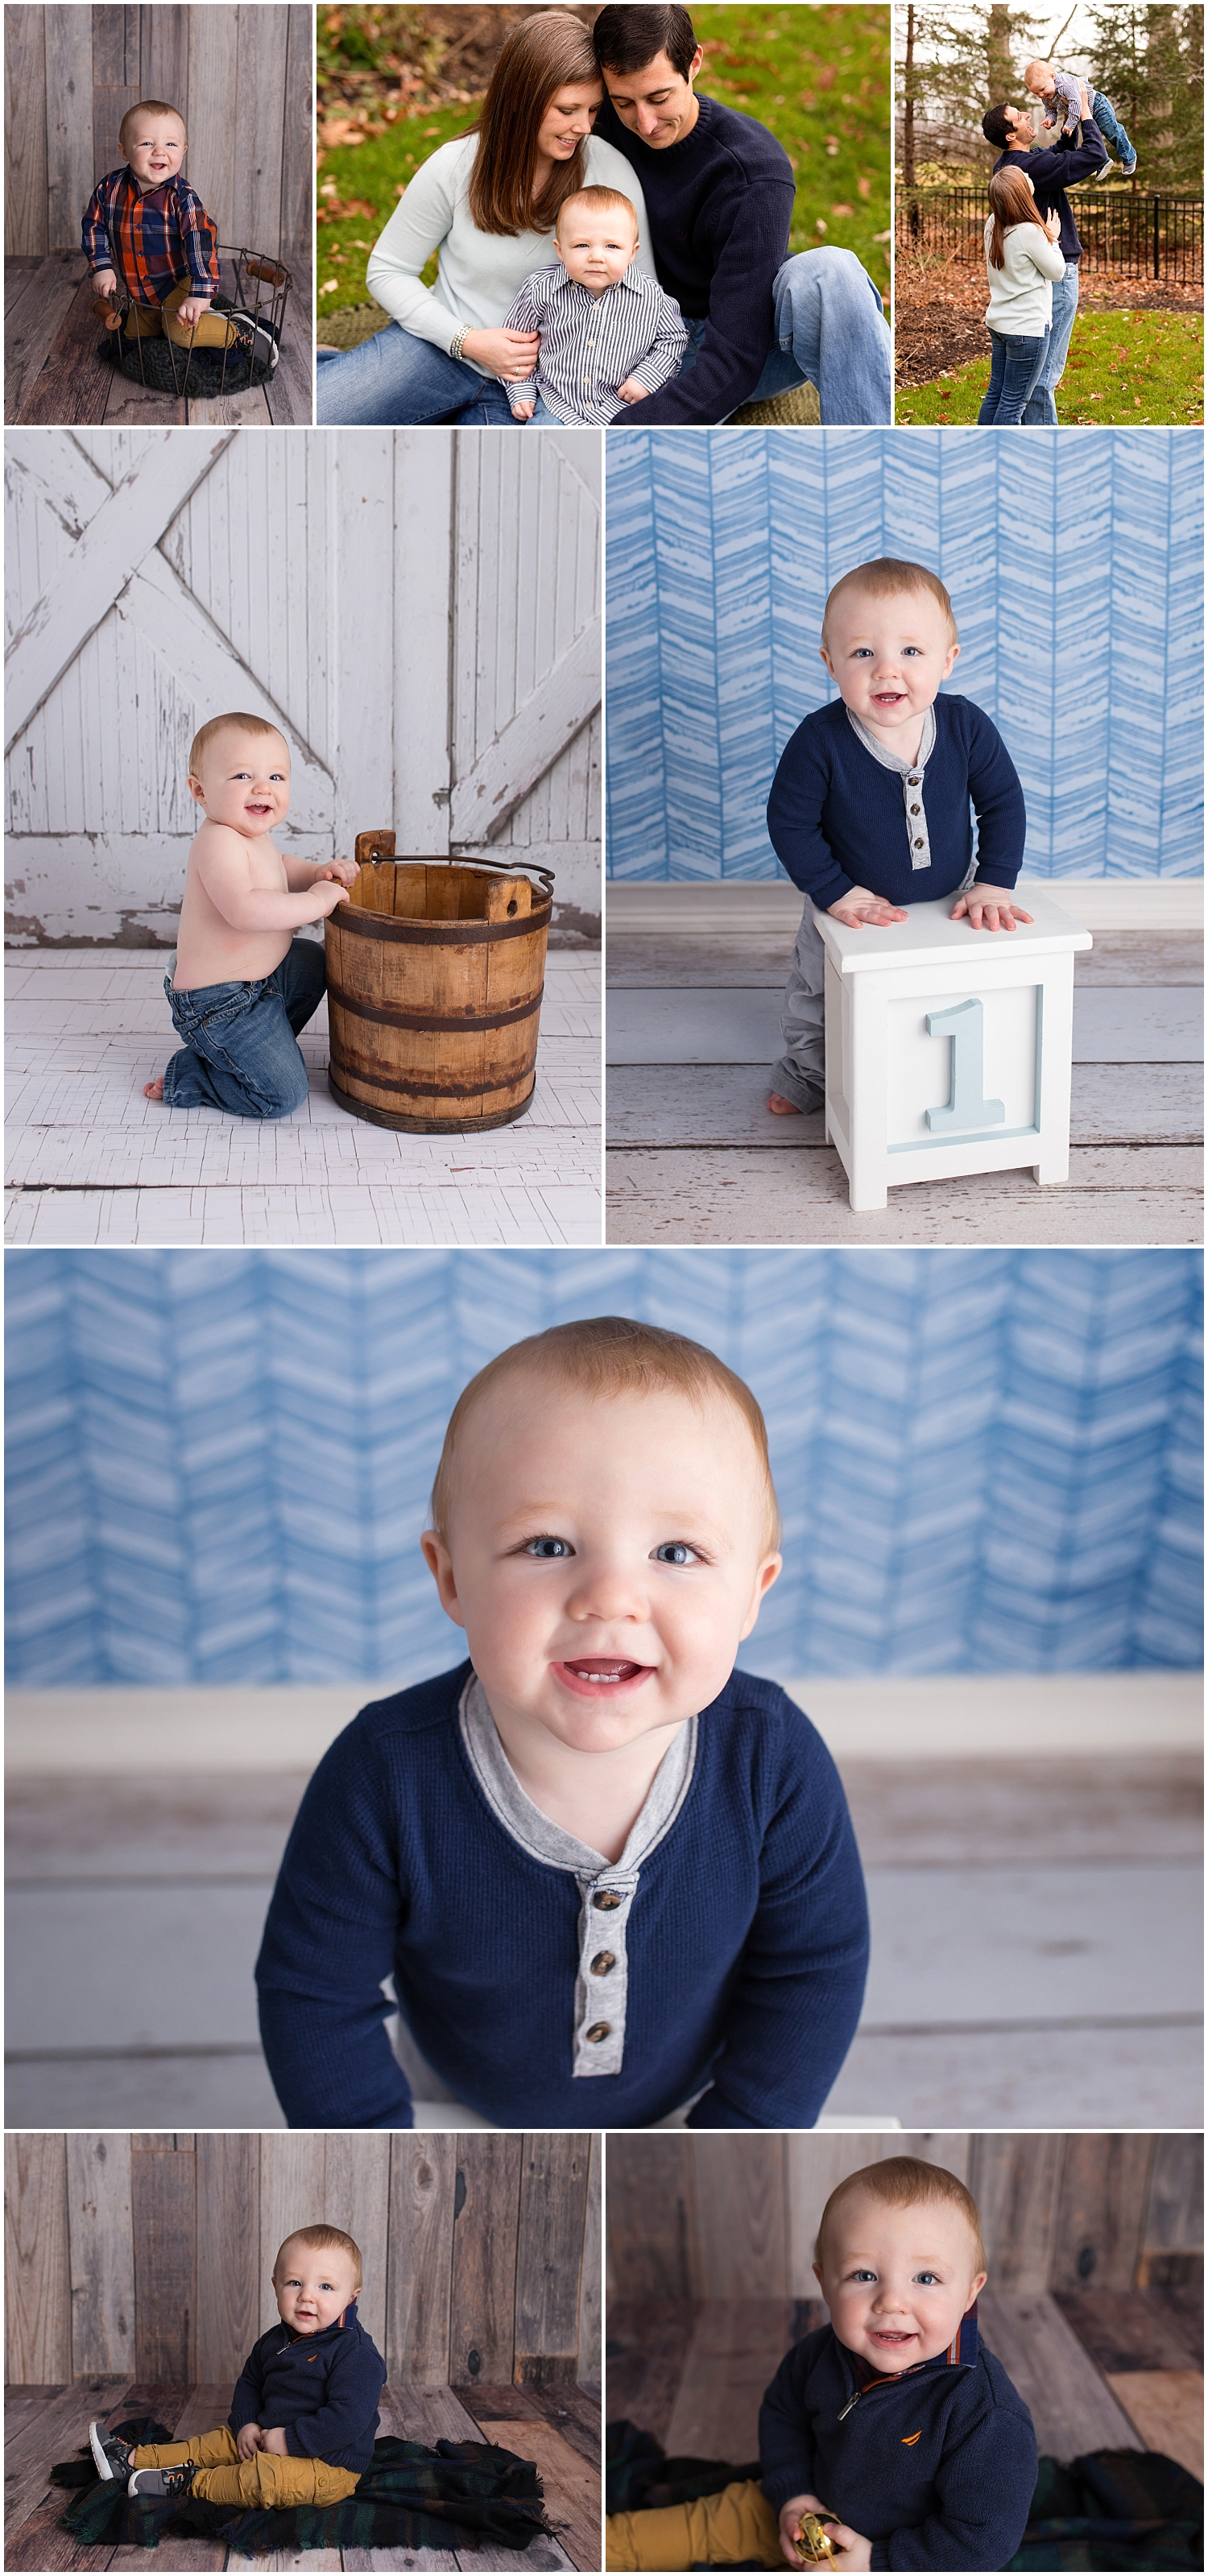 Children's First Year Milestone Sessions